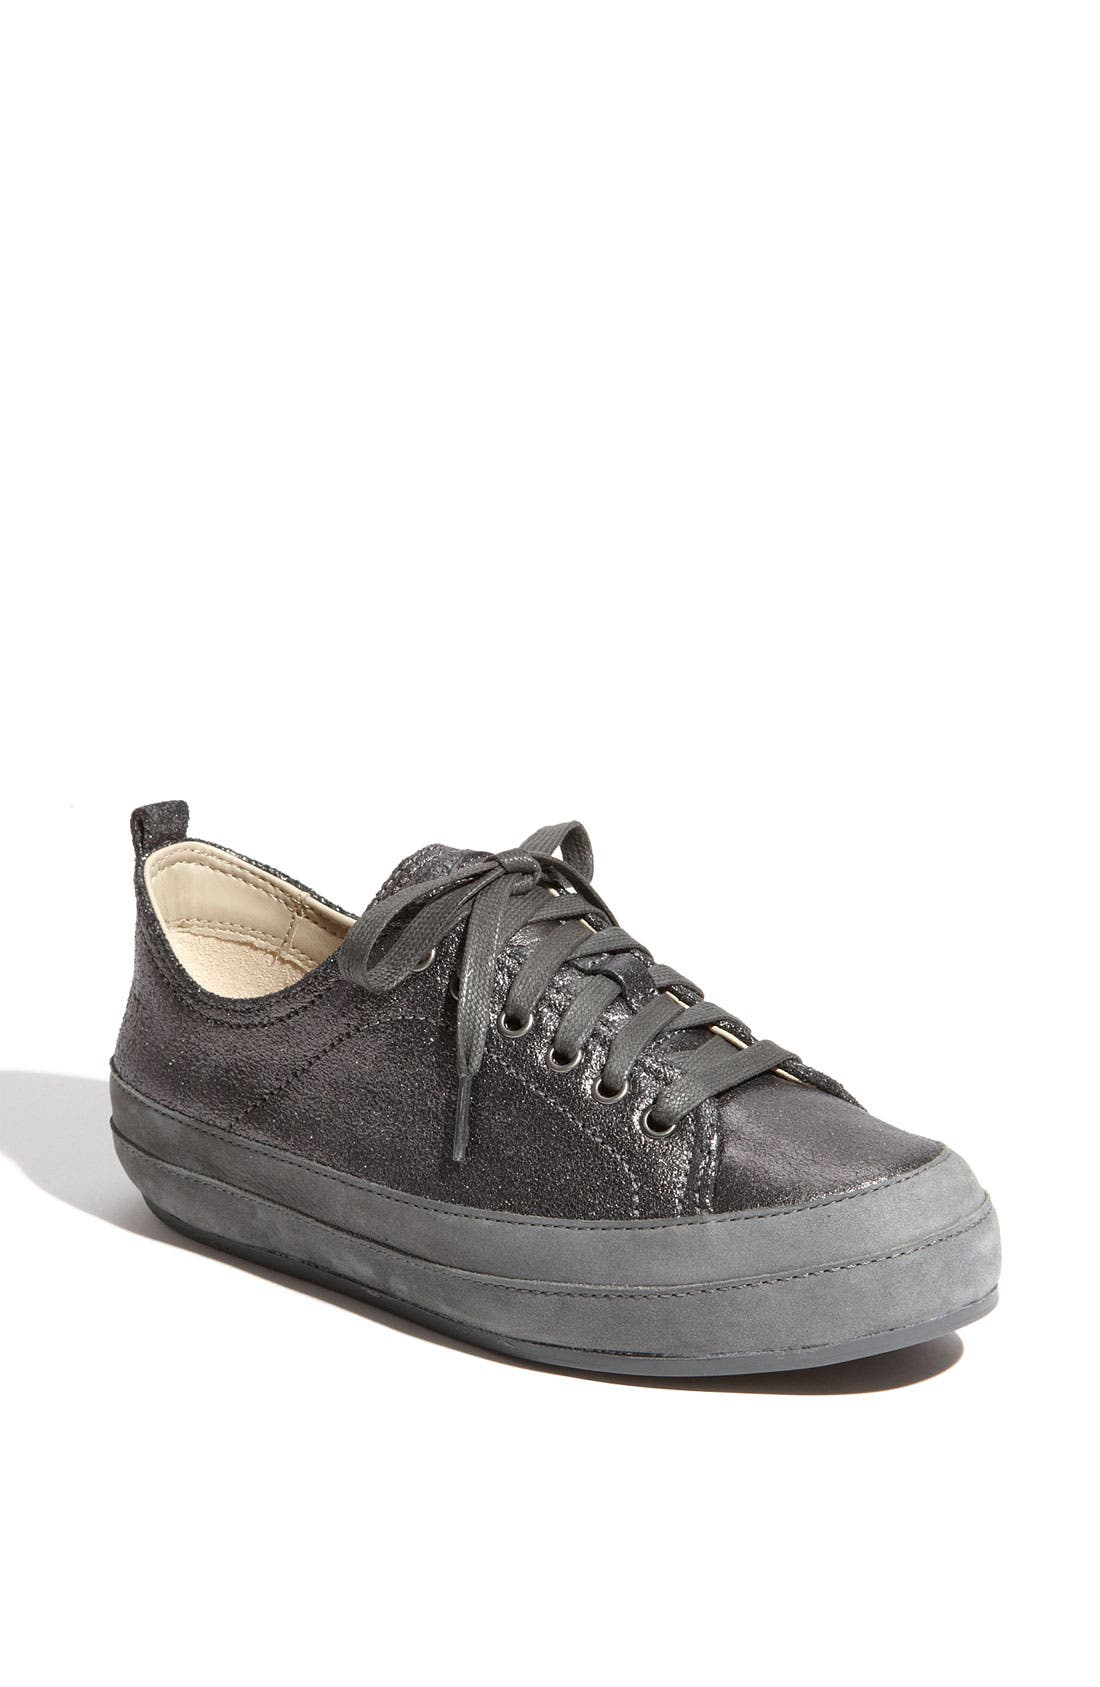 'Supertone<sup>™</sup> Luxe' Sneaker, Main, color, 026